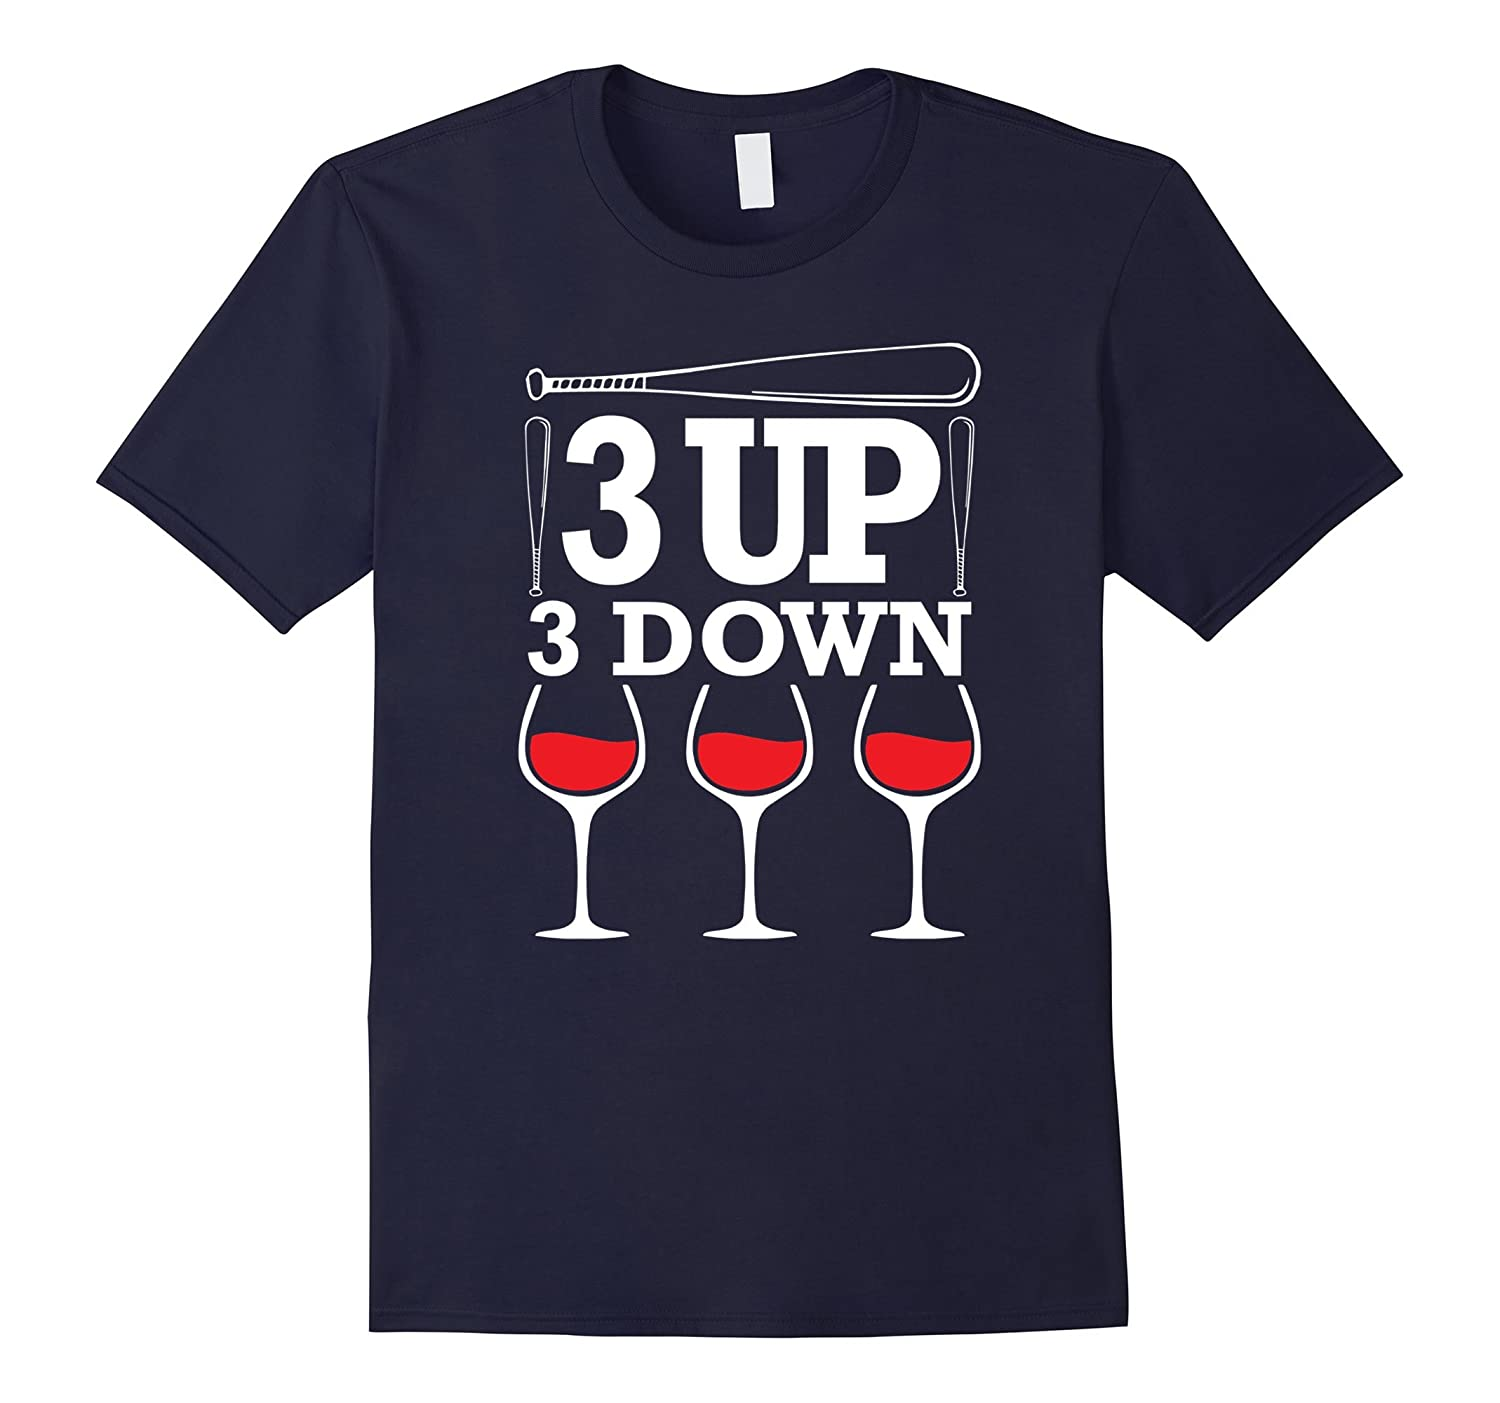 3 up 3 down T shirt Baseball Mom T-Shirt-BN